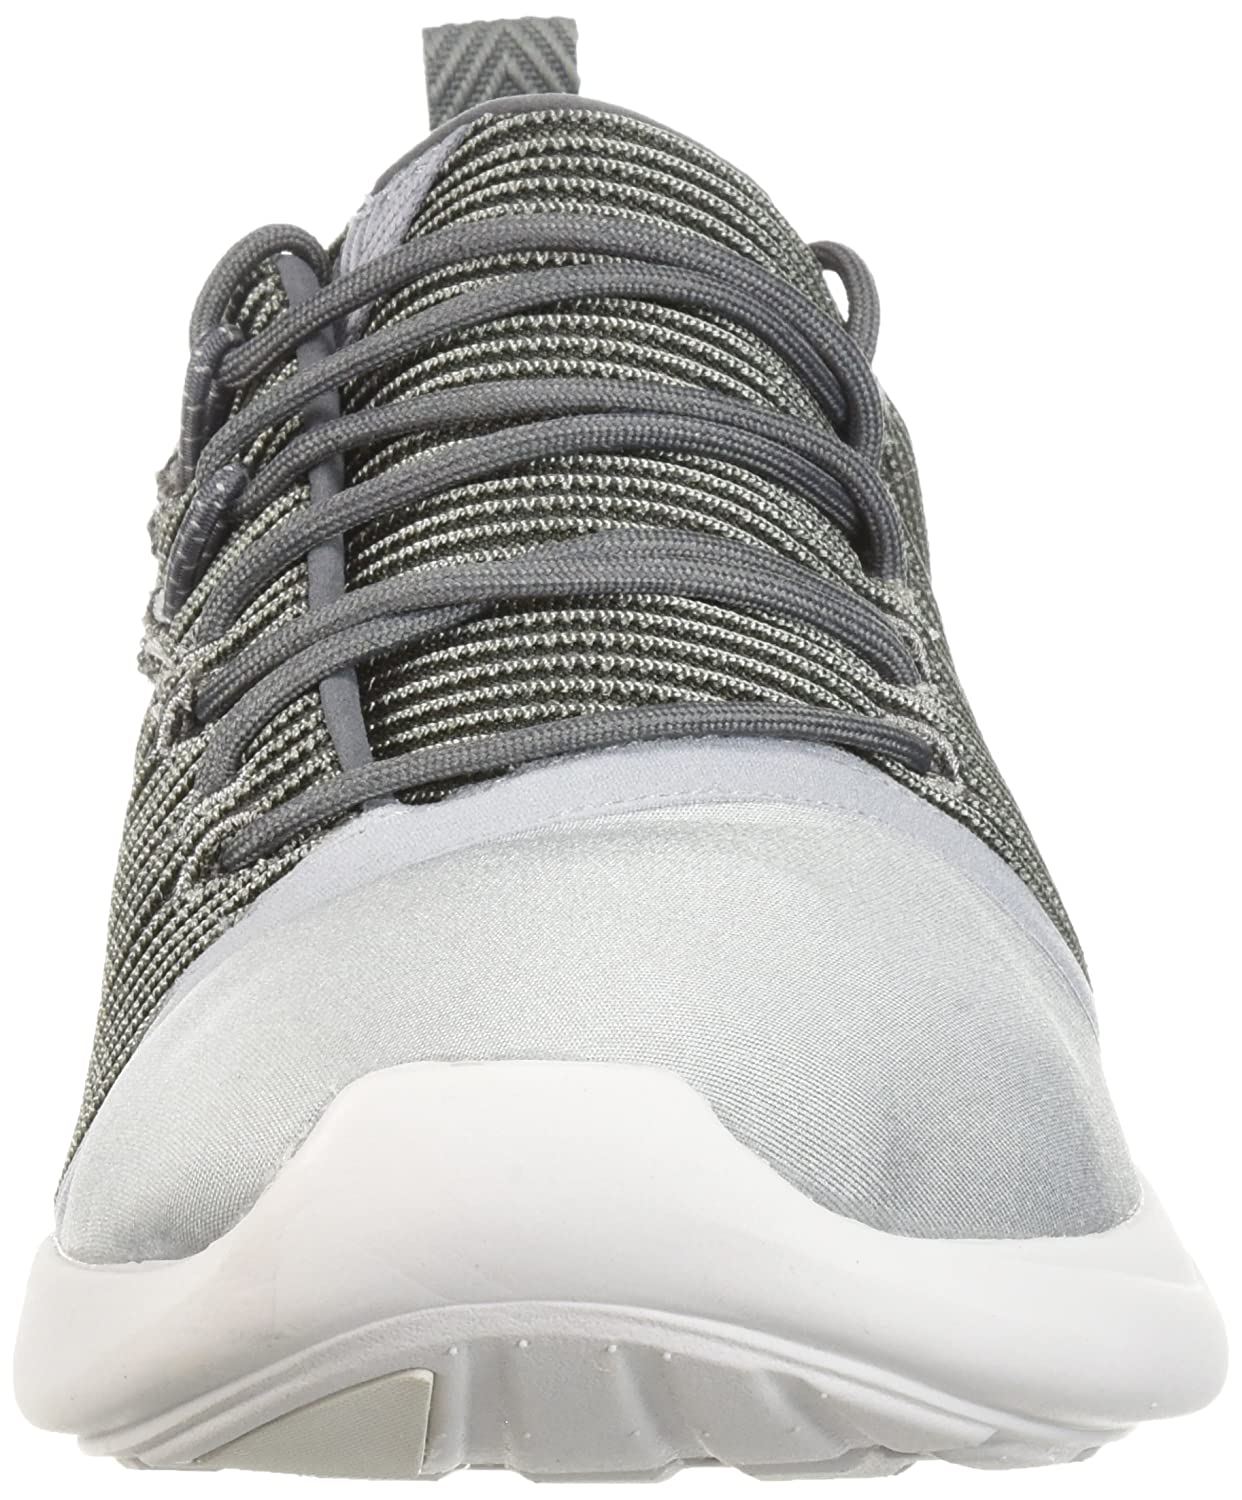 Under Armour Armour Armour UA W Charged all-Day, Scarpe Running Donna | adottare  f86e1a